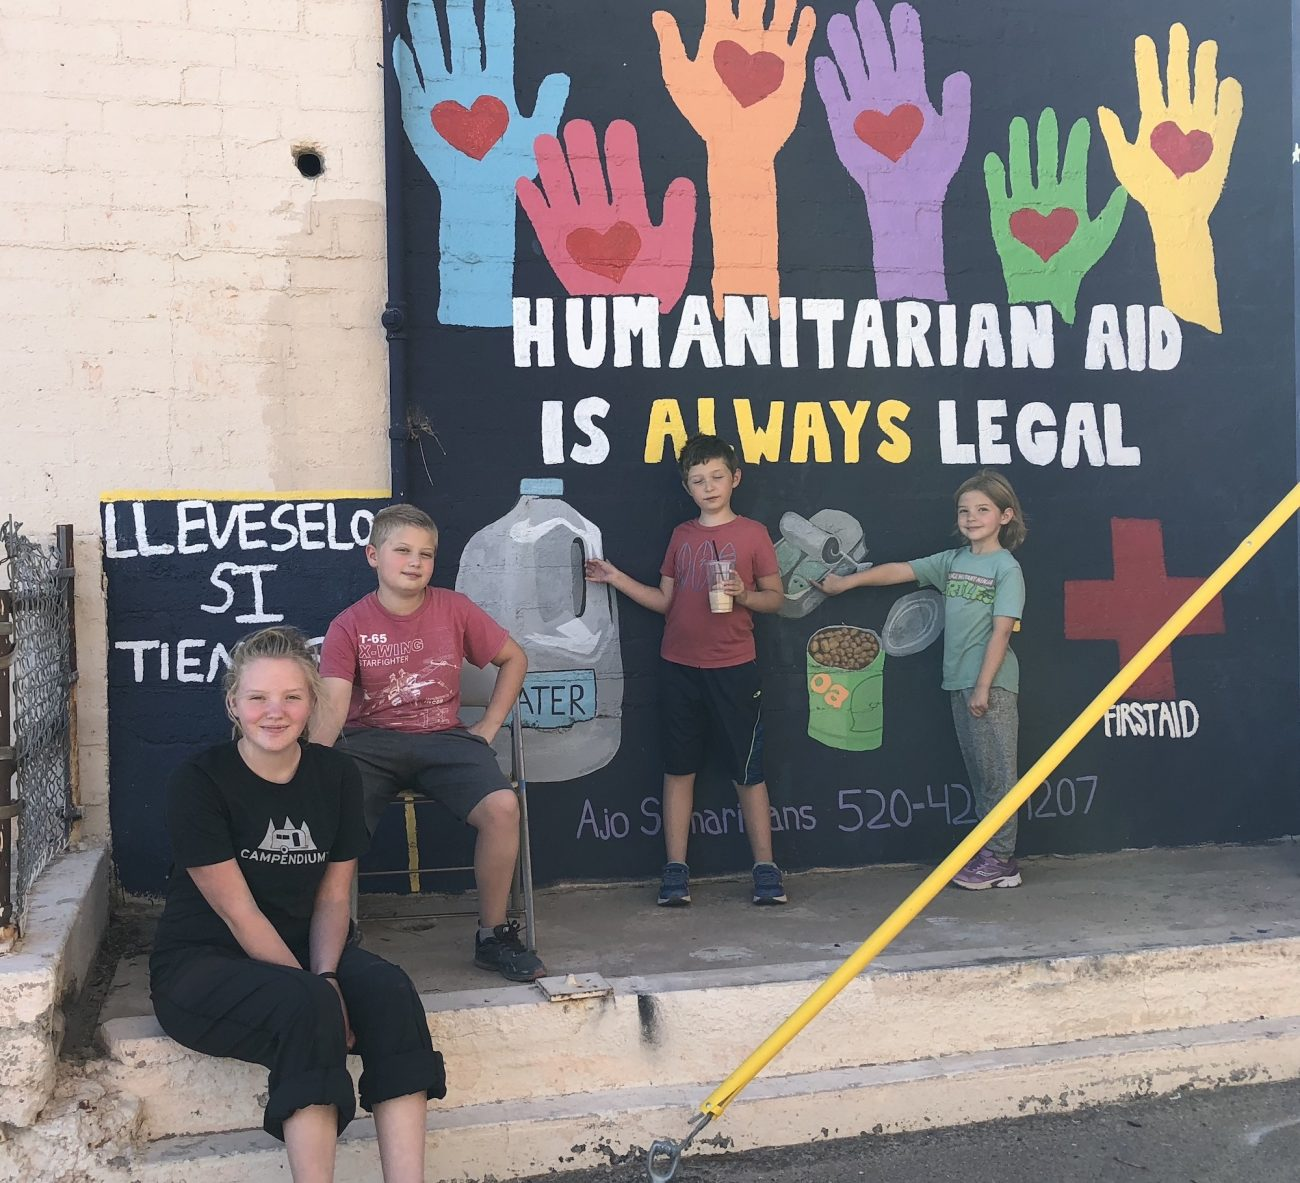 Kids standing in front of mural for humanitarian aid in Ajo, AZ.